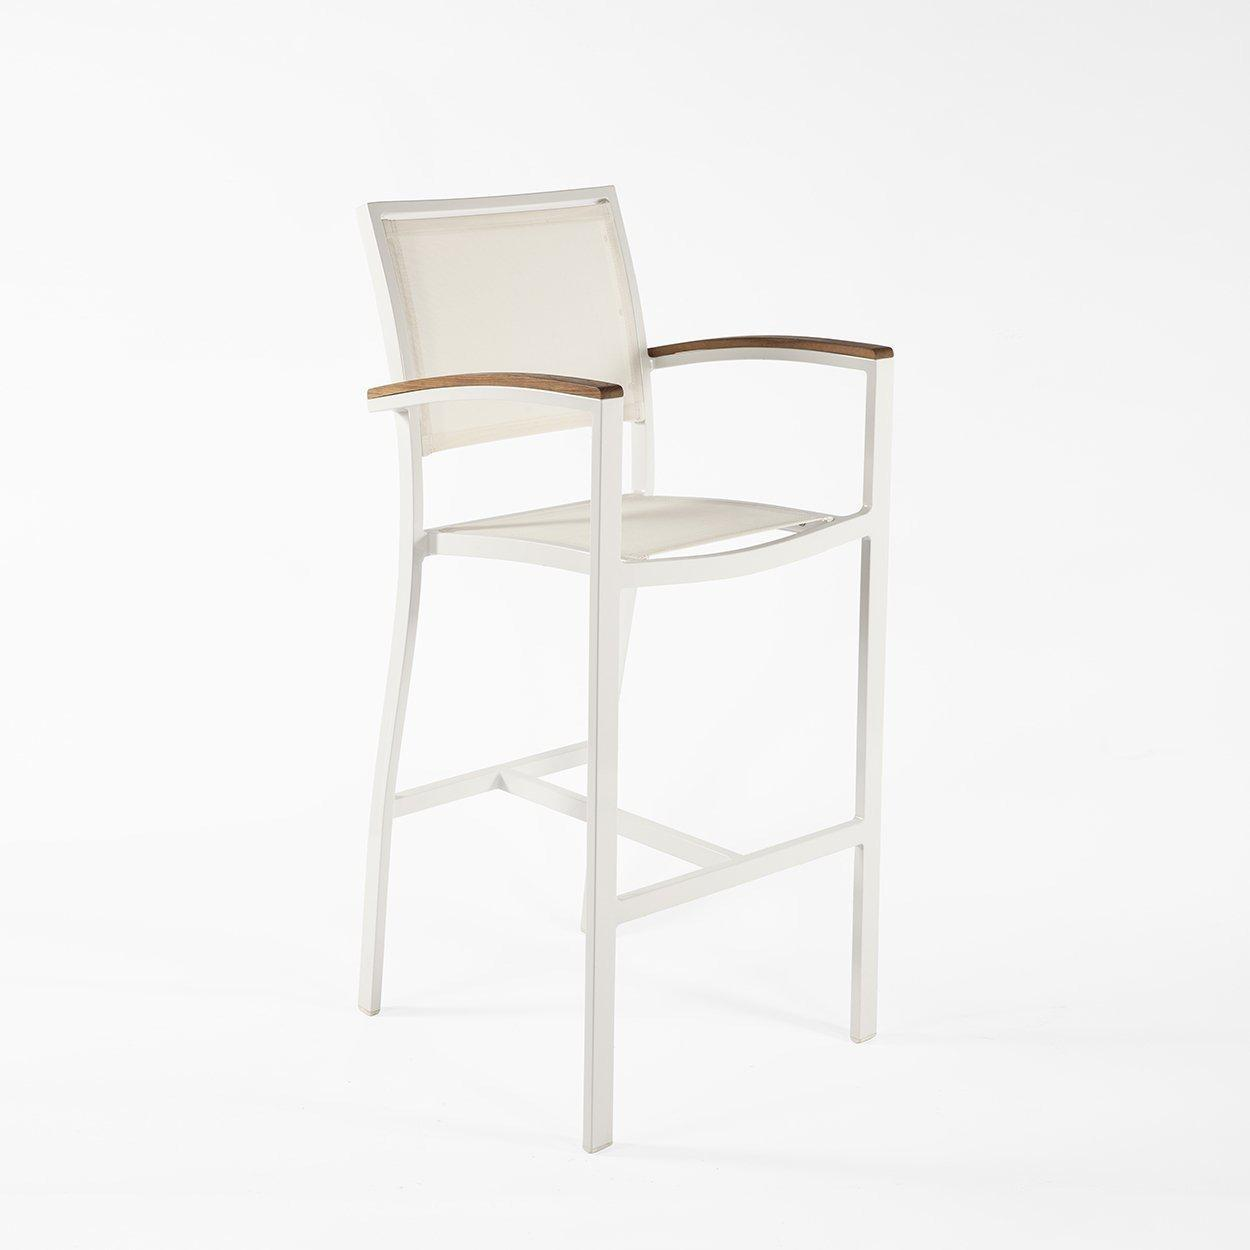 [FCC0218WHT] flevoland bar chair